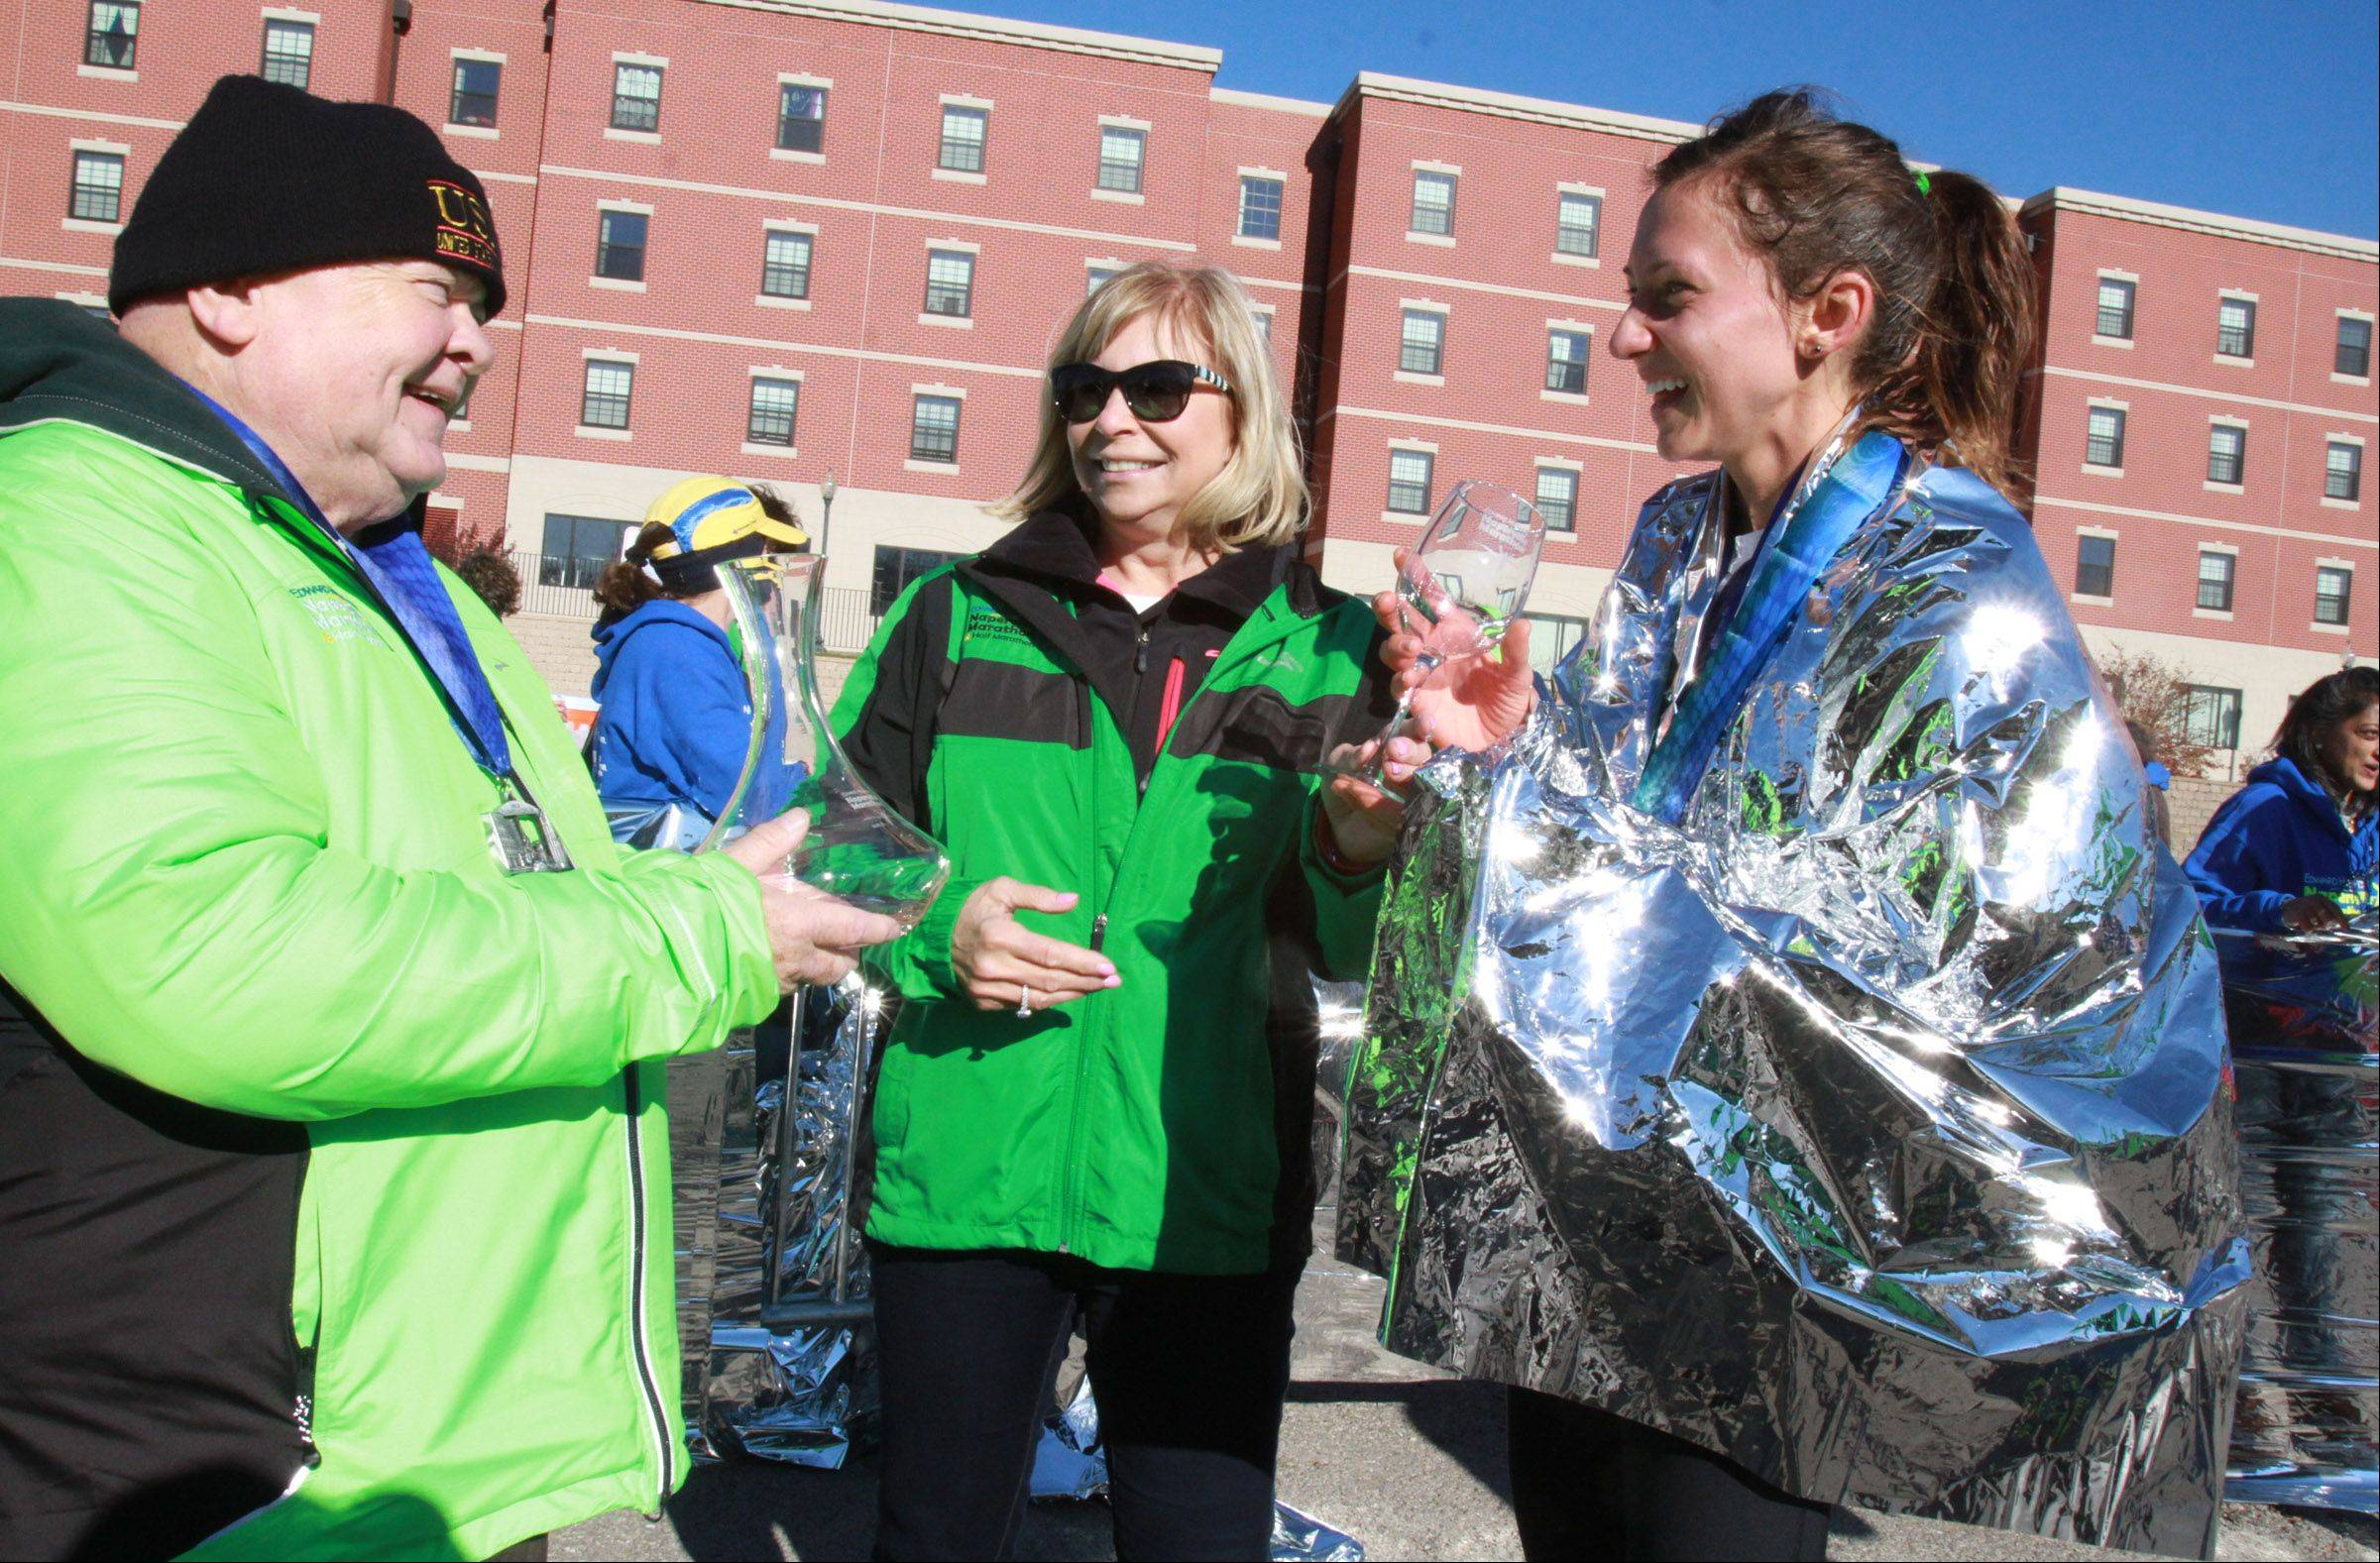 Amanda Mirochna of Naperville, the first women to cross the finish line, receives two awards from the Mayor of Naperville George Prade and Pam Davis, president of Naperville Edward Hospital, at the Edward Hospital Naperville Marathon on Sunday, November 10, 2013.